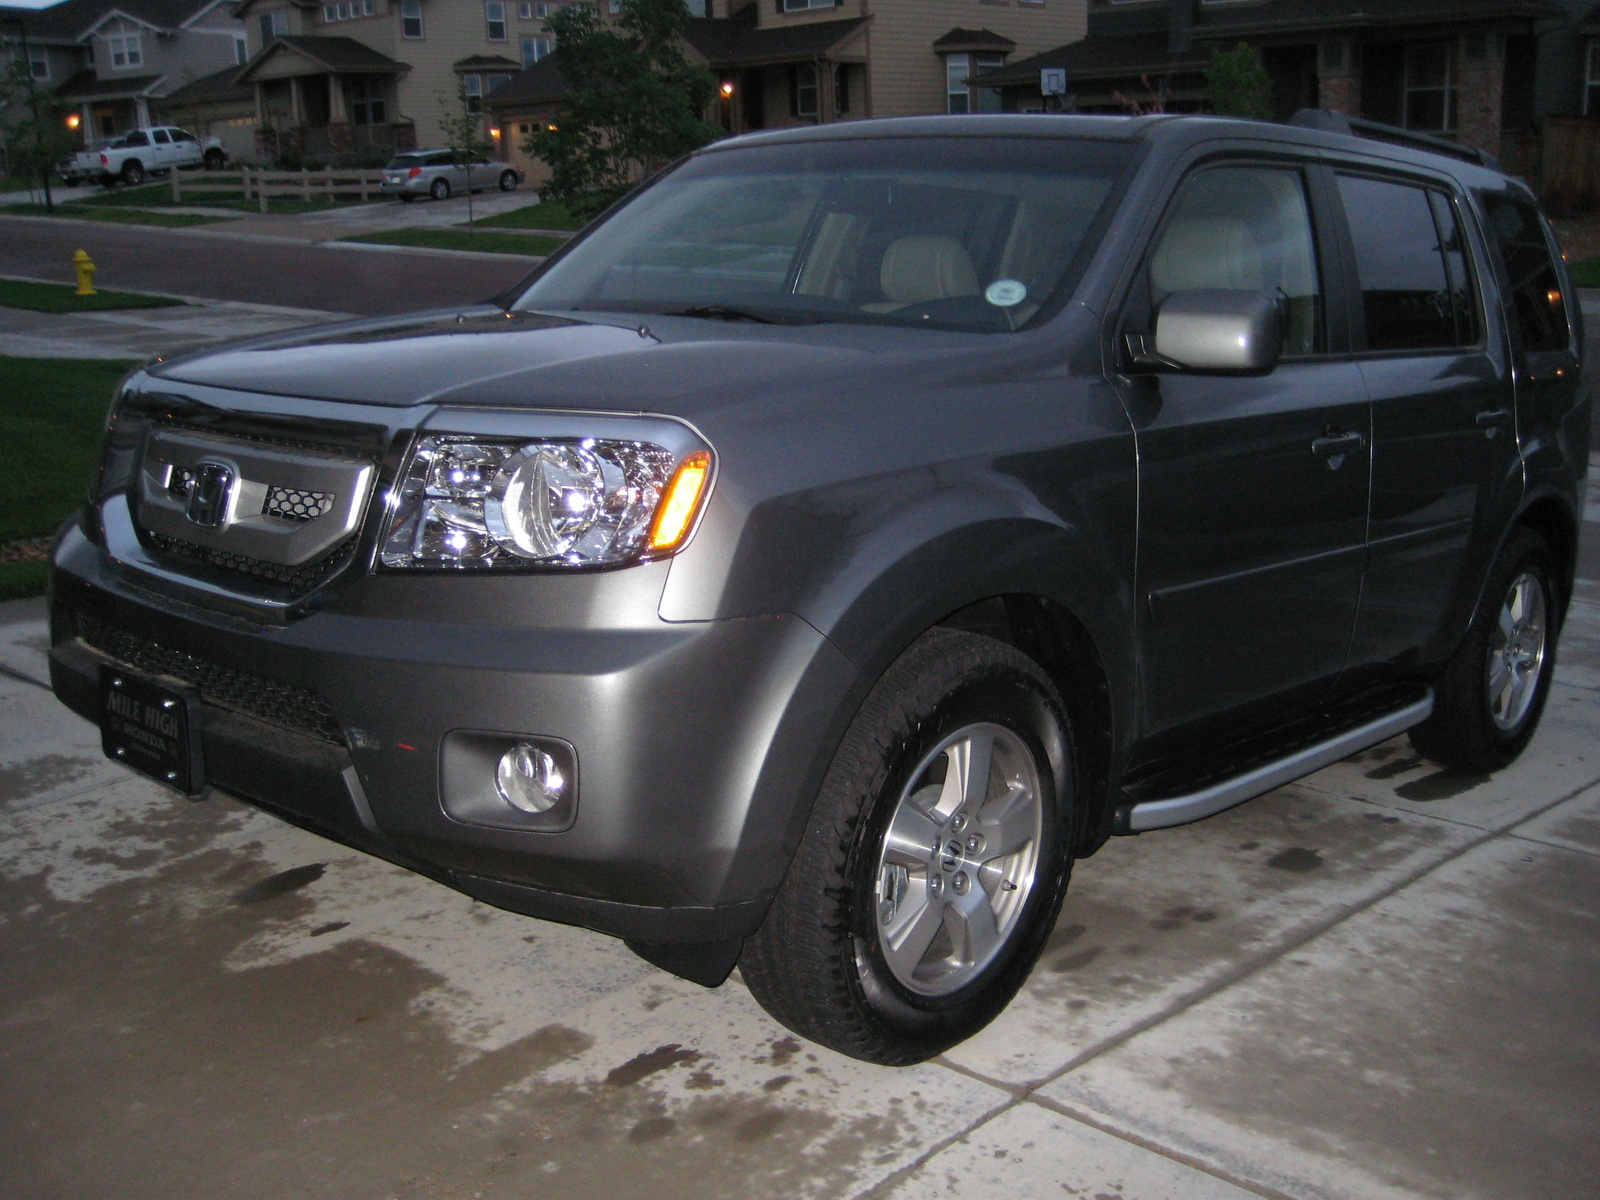 2009 honda pilot pictures cargurus. Black Bedroom Furniture Sets. Home Design Ideas